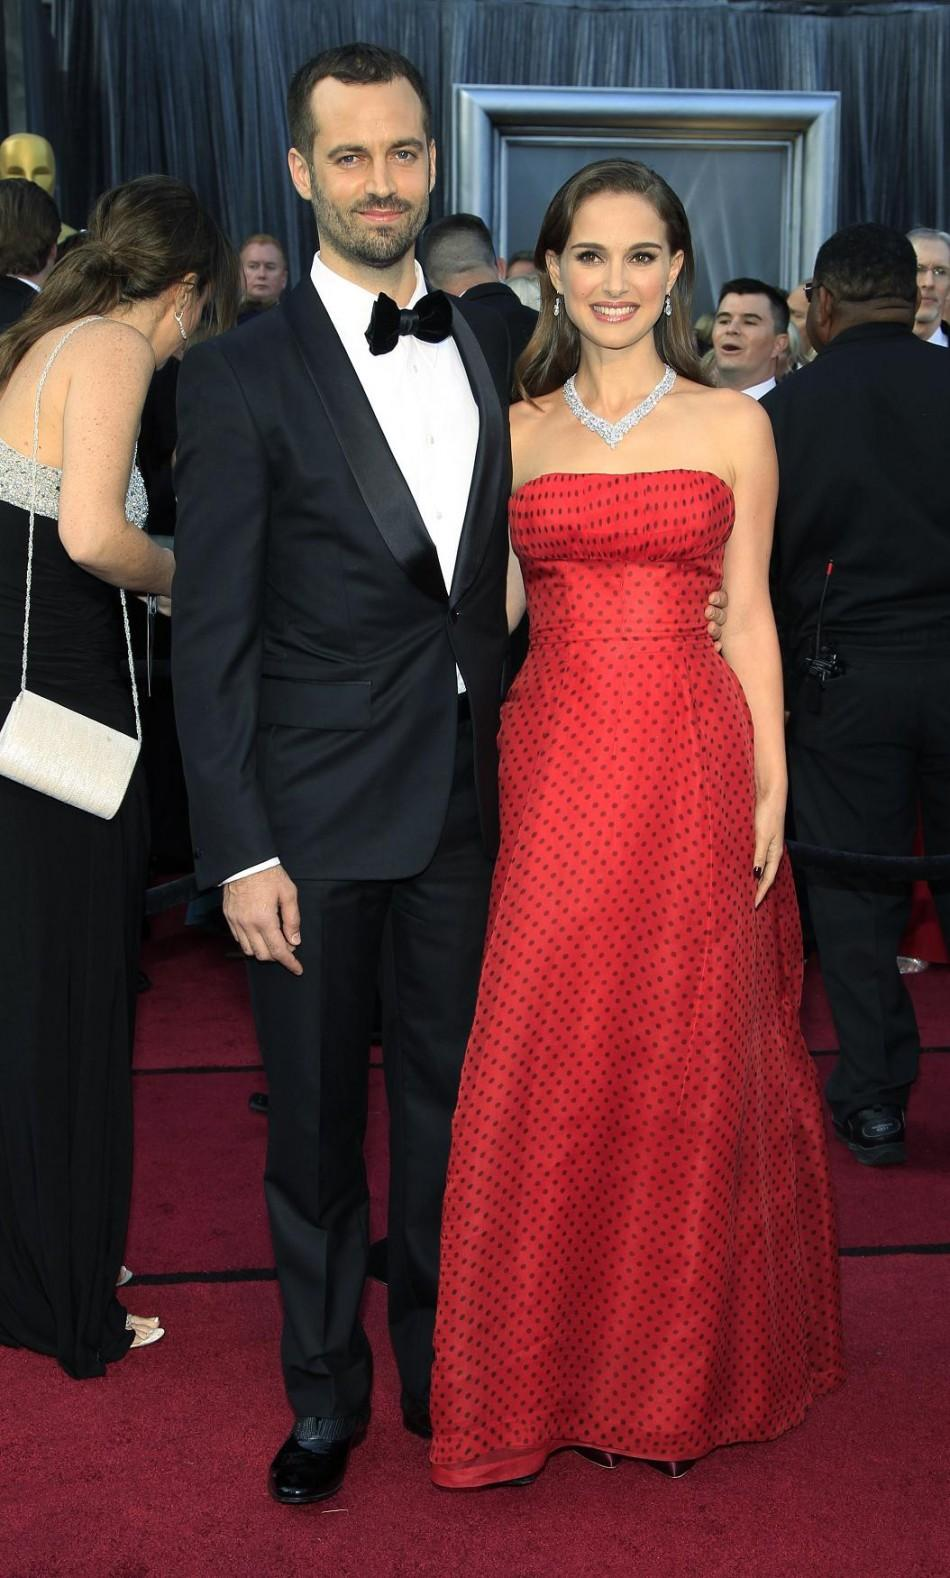 Benjamin Millepied and actress Natalie Portman arrive at the 84th Academy Awards in Hollywood.